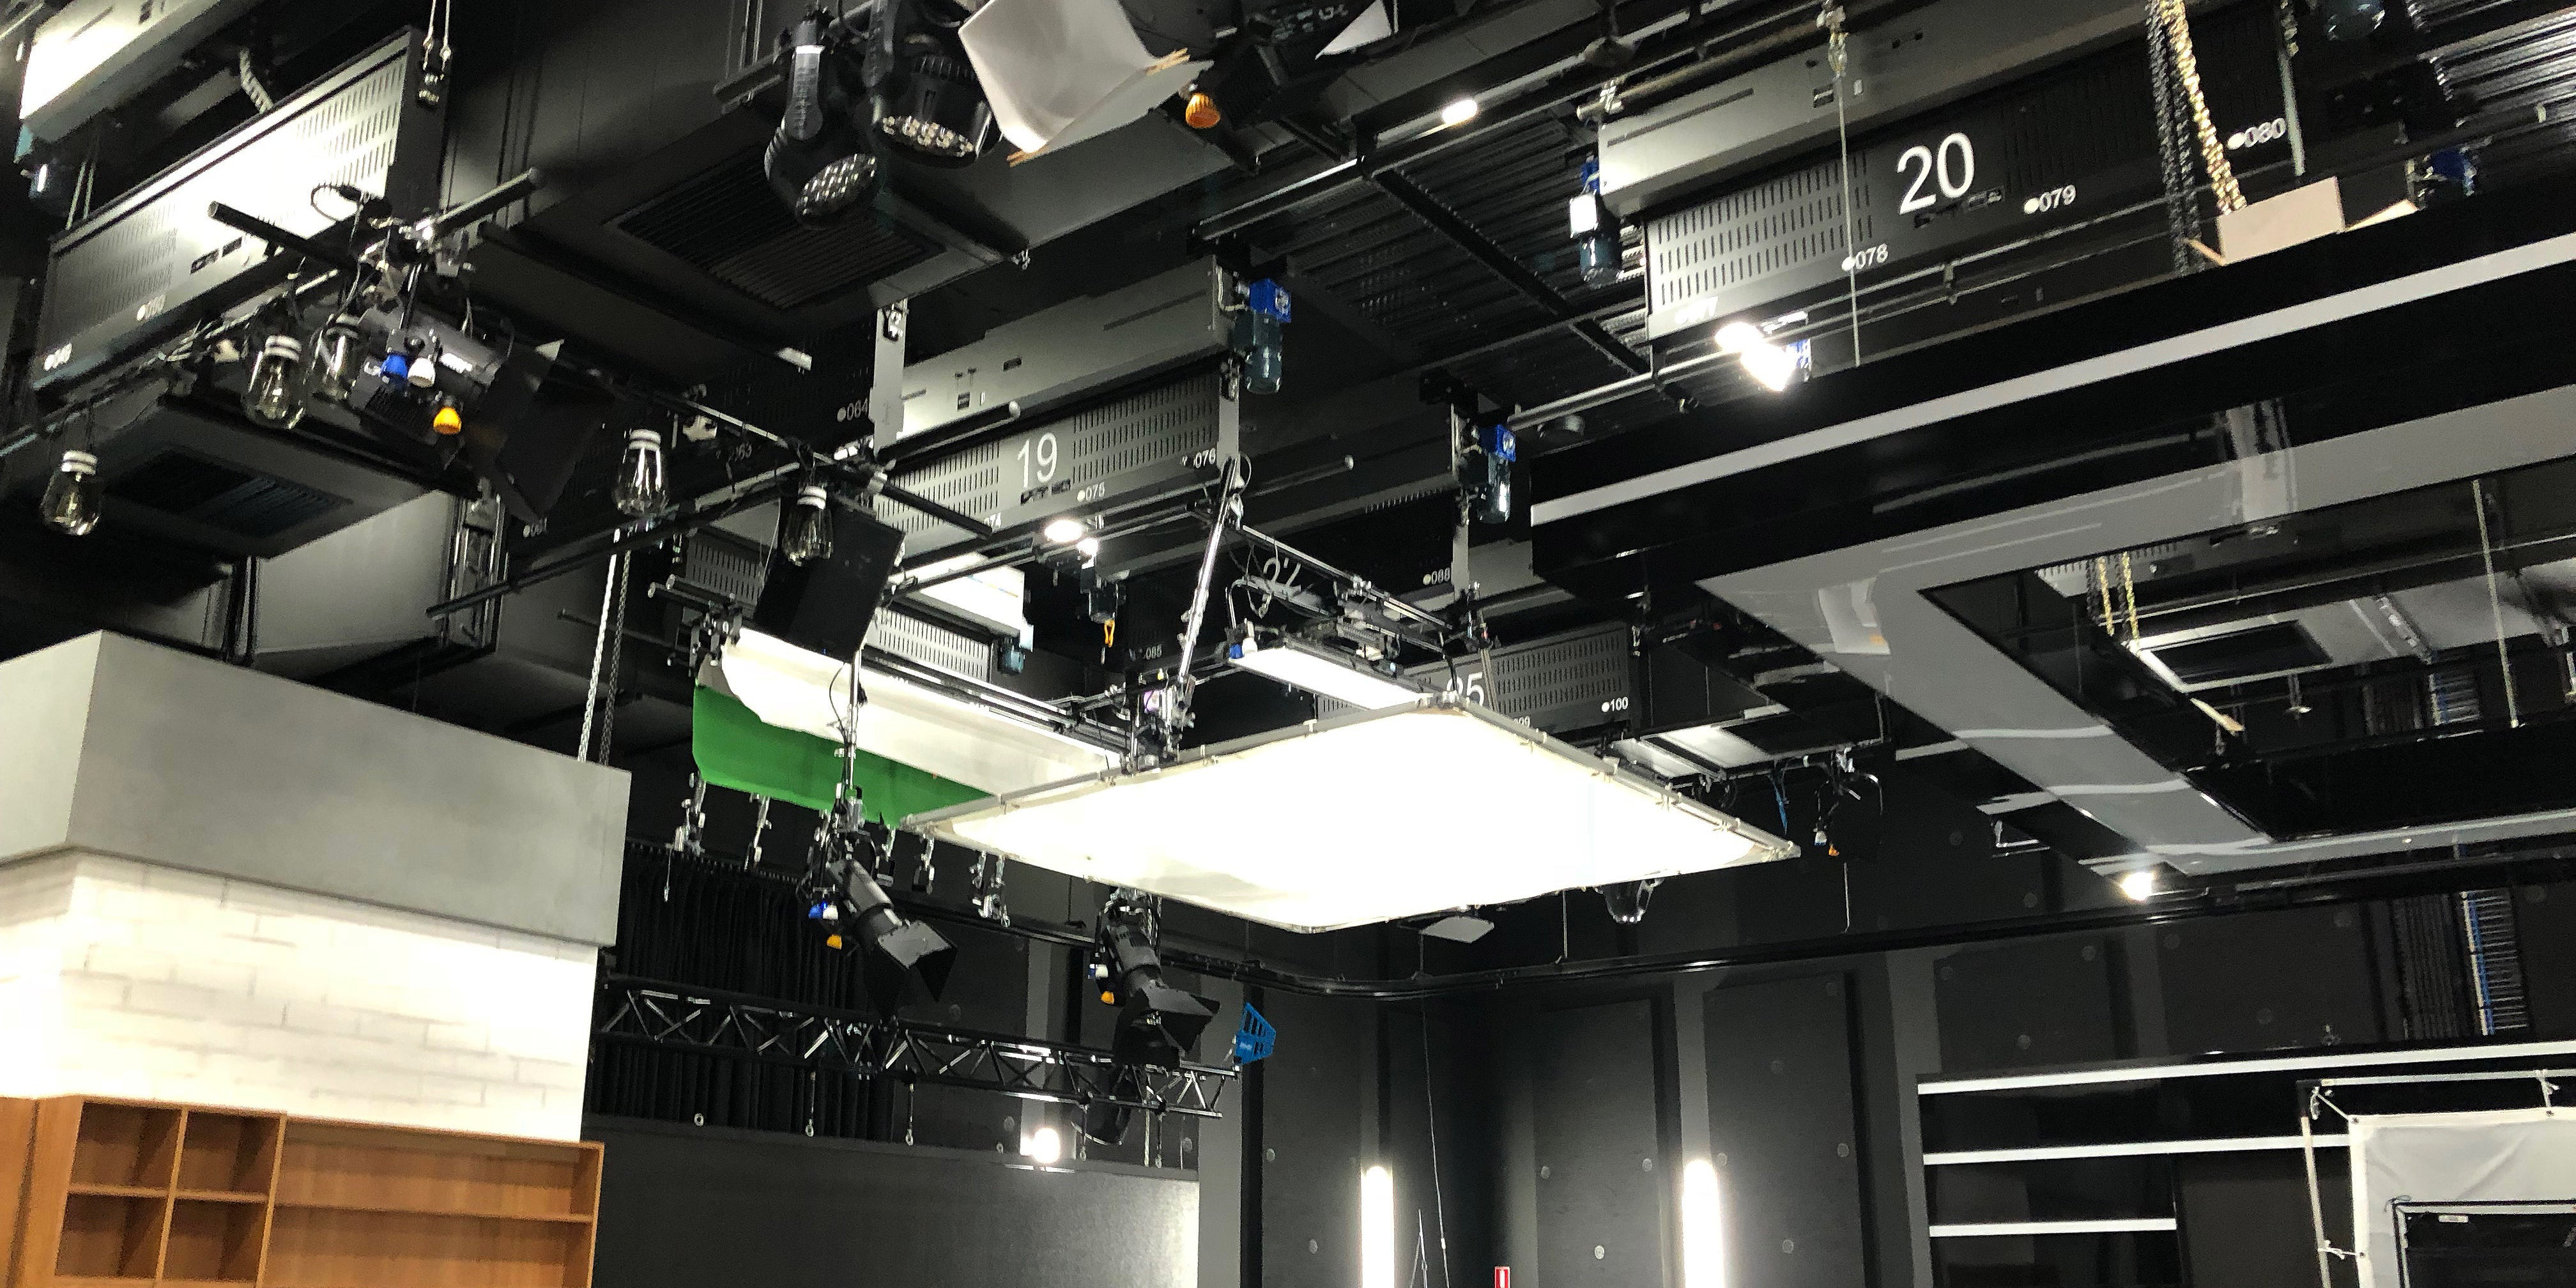 ARRI LED panels, Fresnels and complex control installations featuring a DMX over Ethernet system